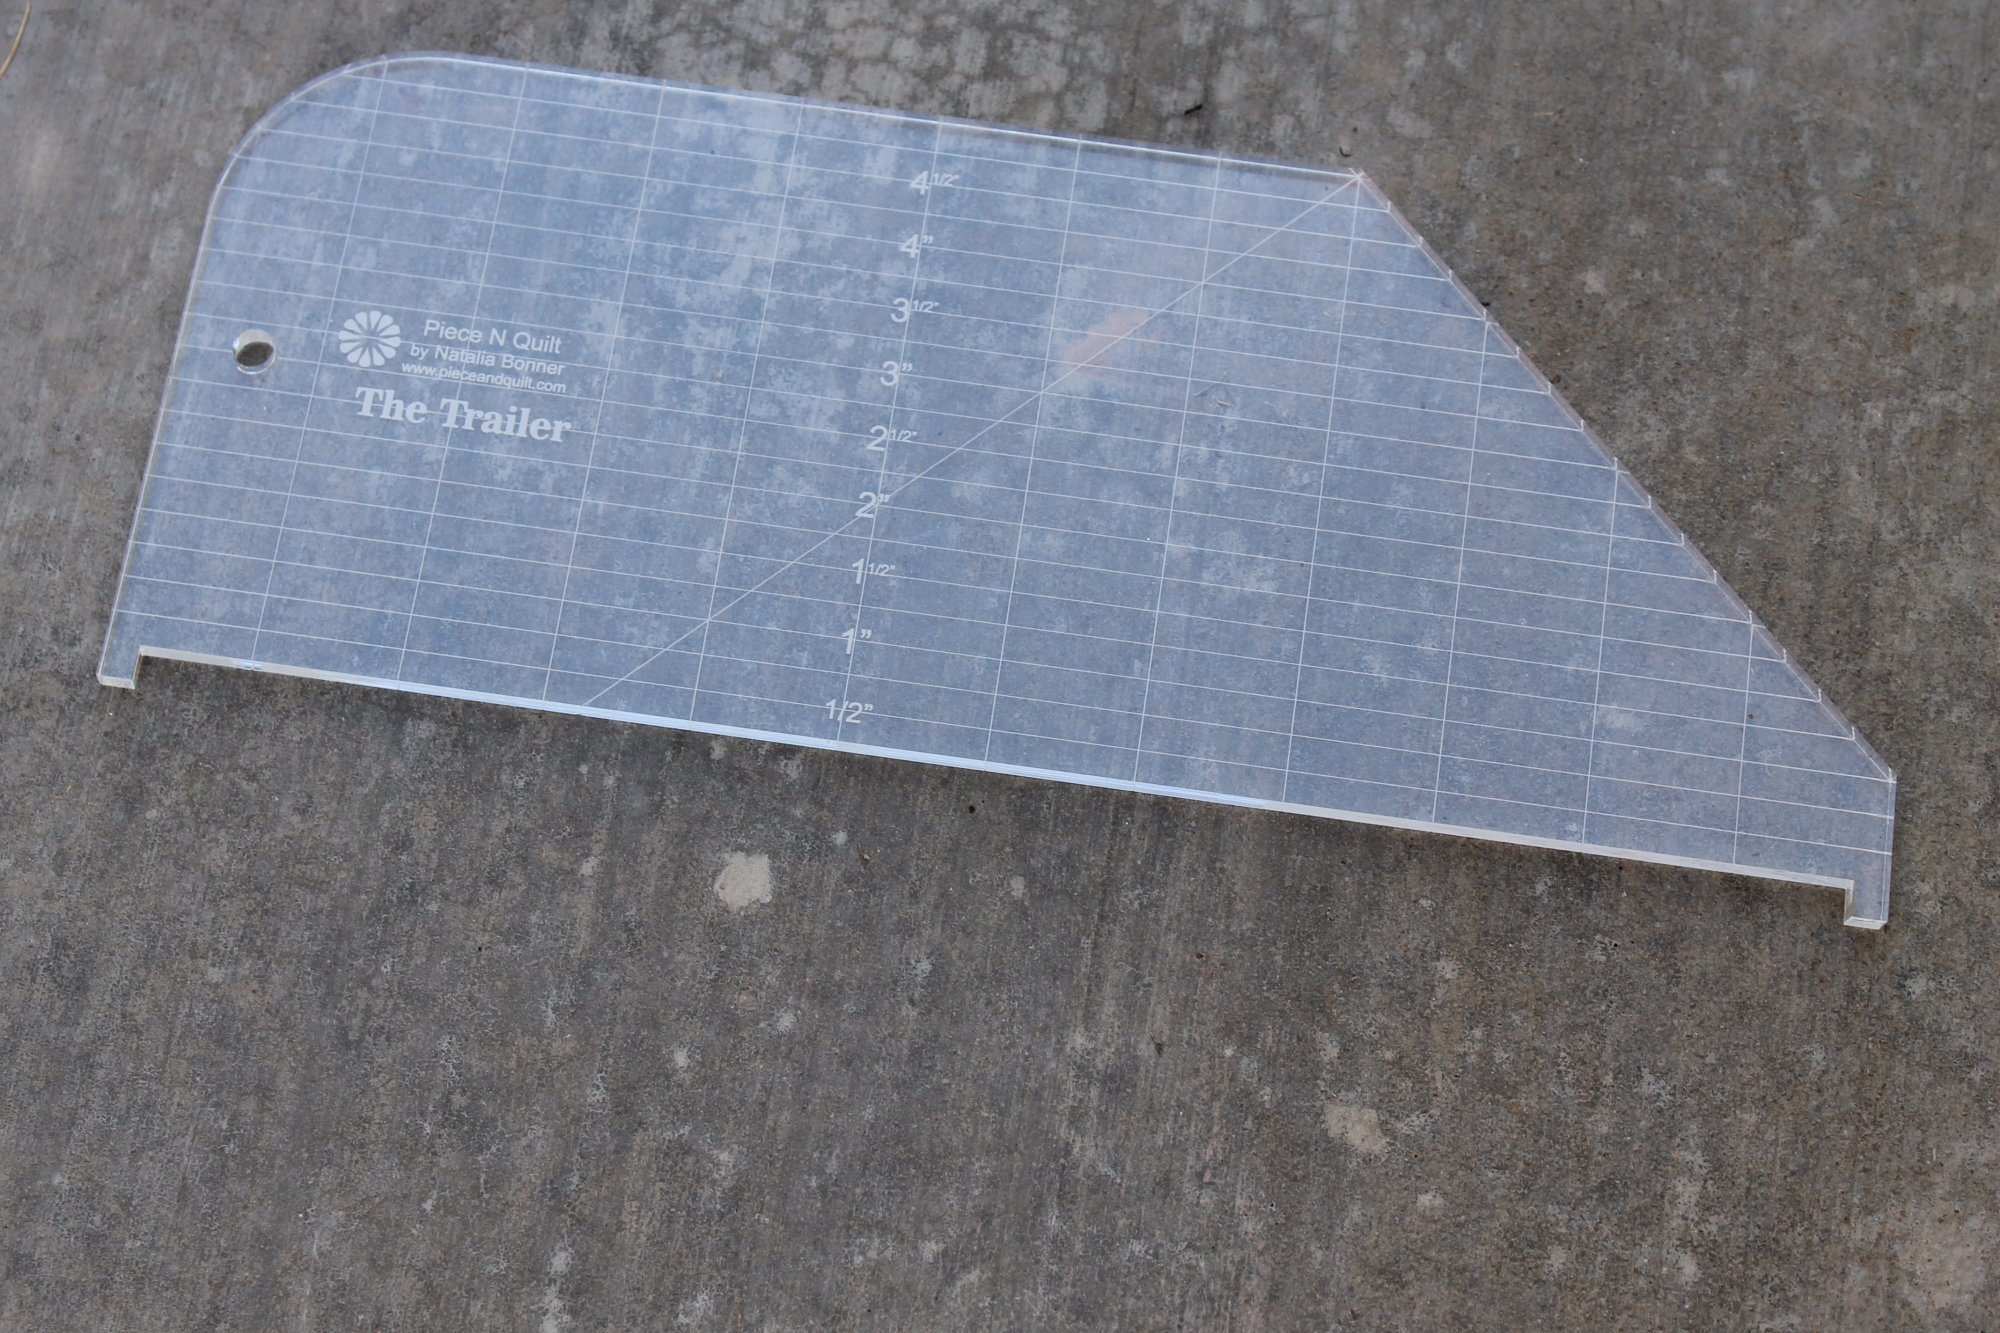 The Trailer Machine Quilting Ruler